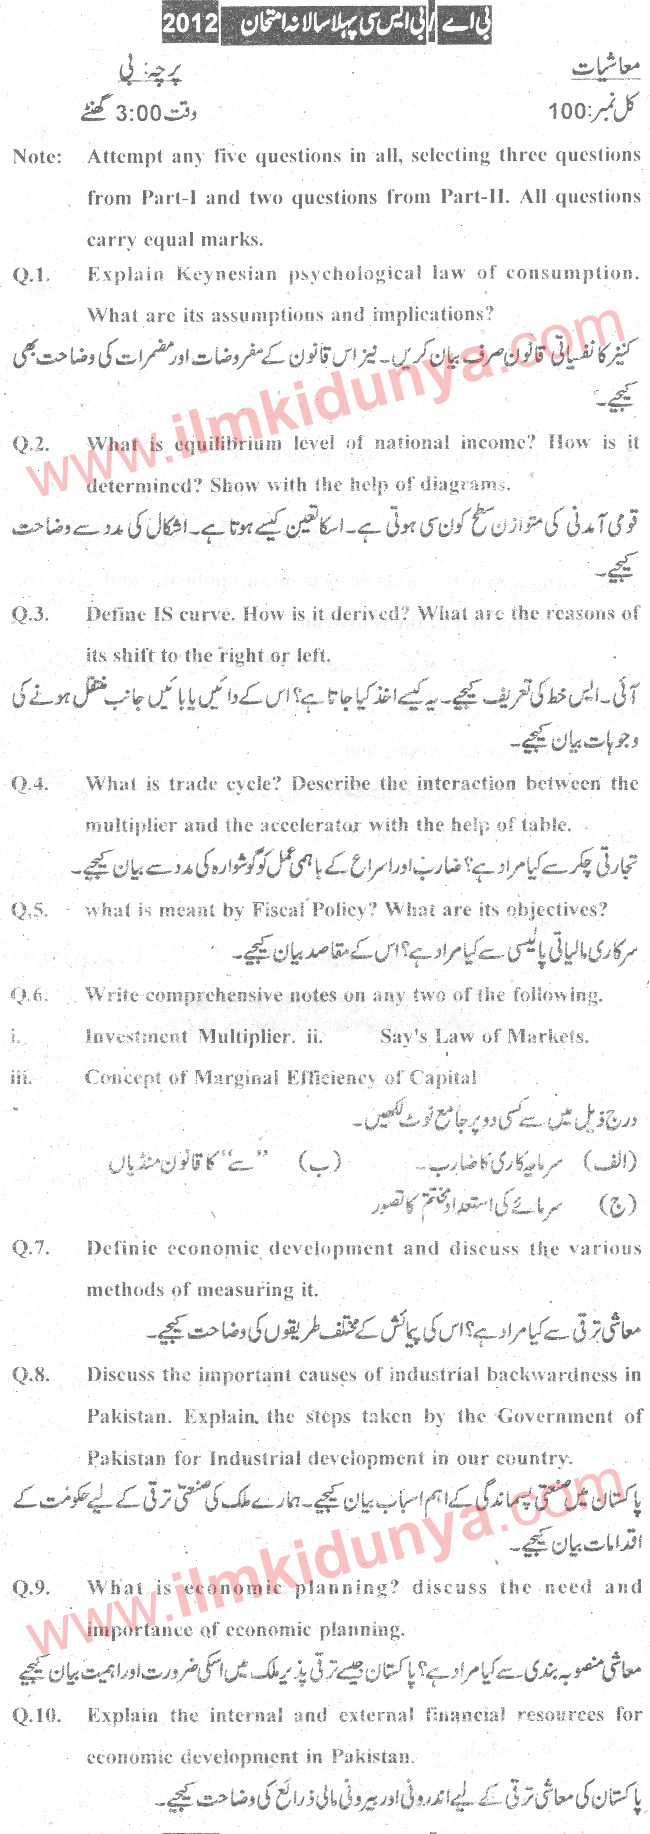 Past Paper Sargodha University 2012 BA BSc Economics